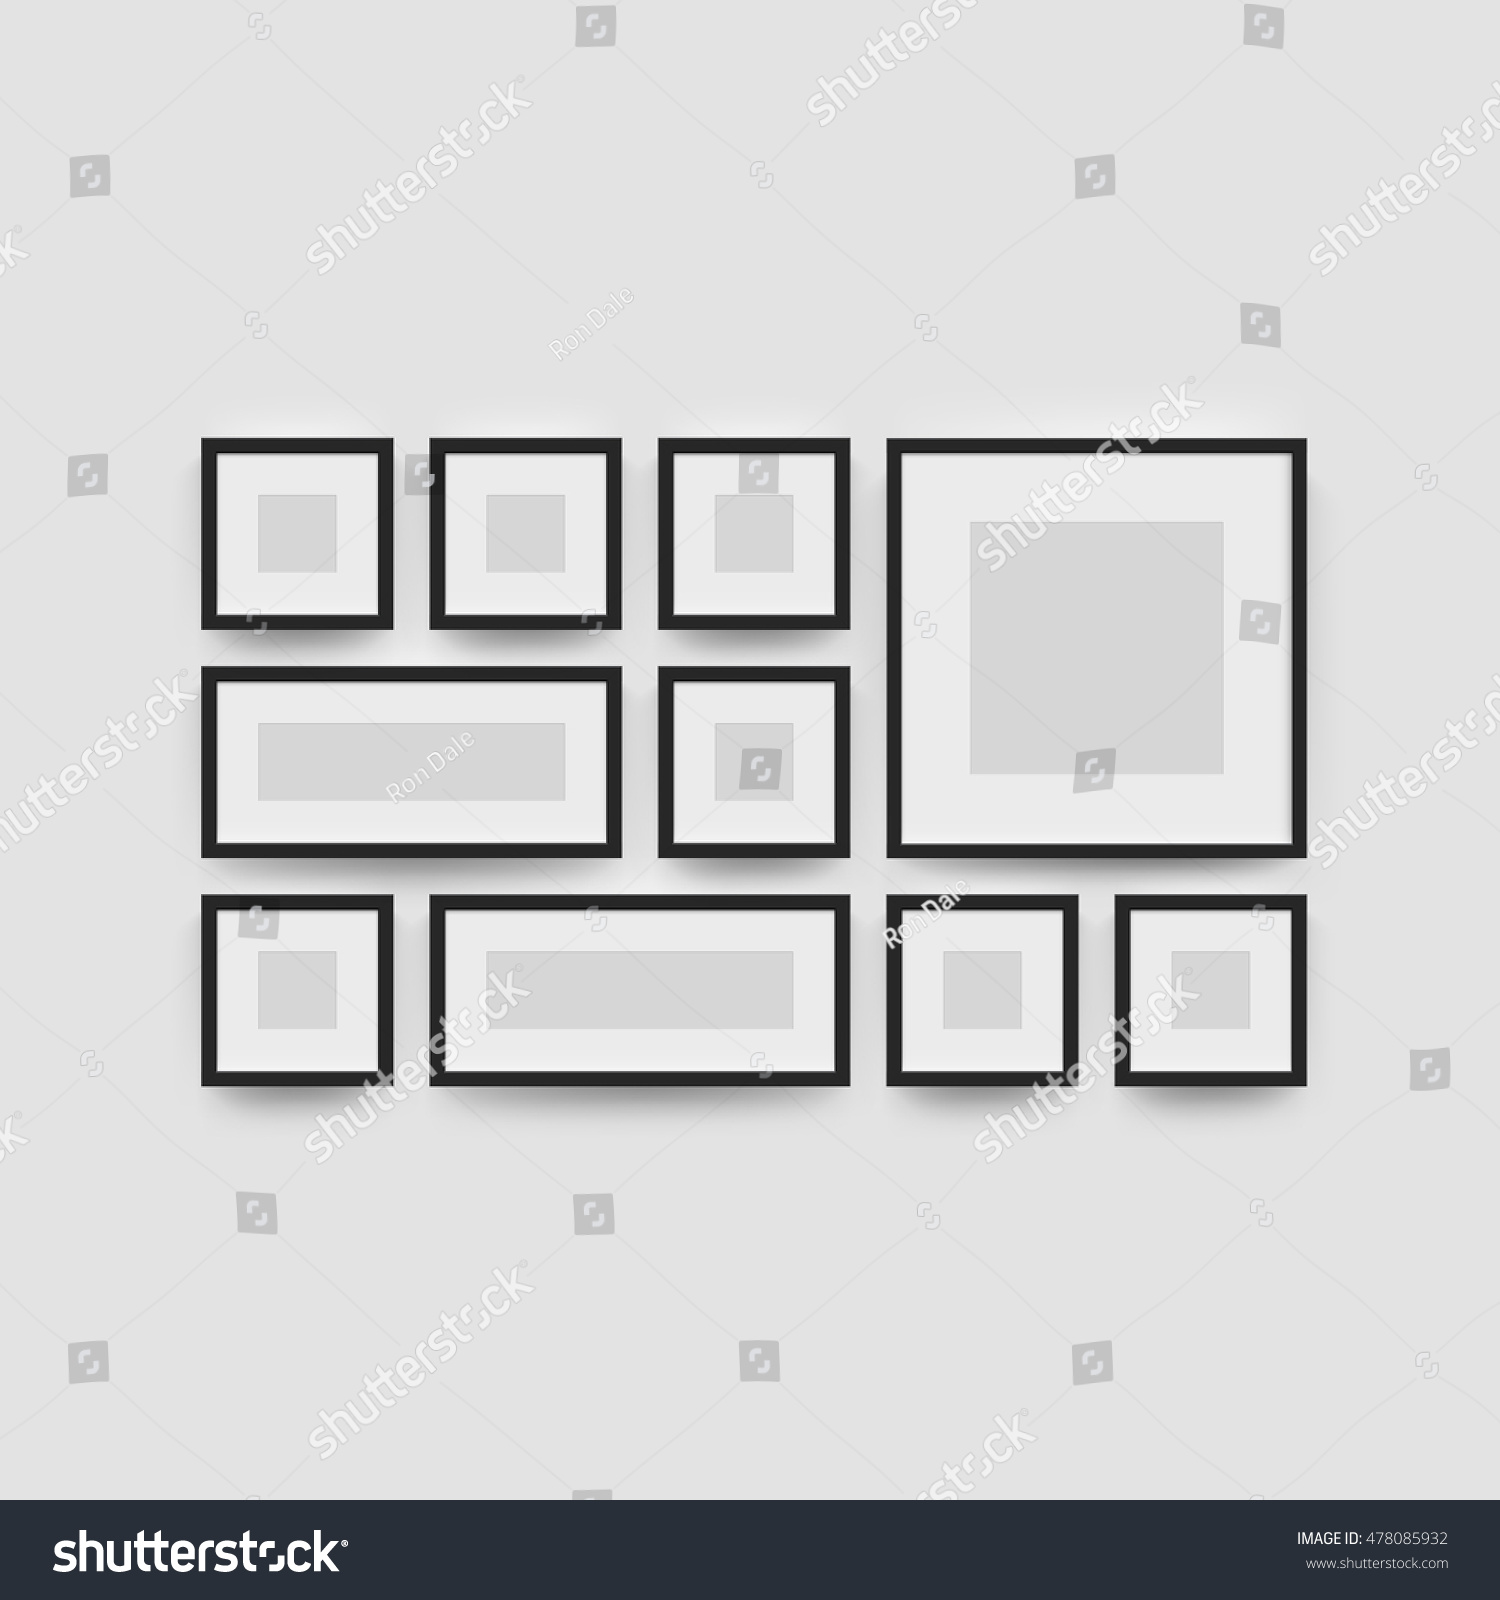 Black Blank Photo Frame Wall Gallery Stock Vector (Royalty Free ...